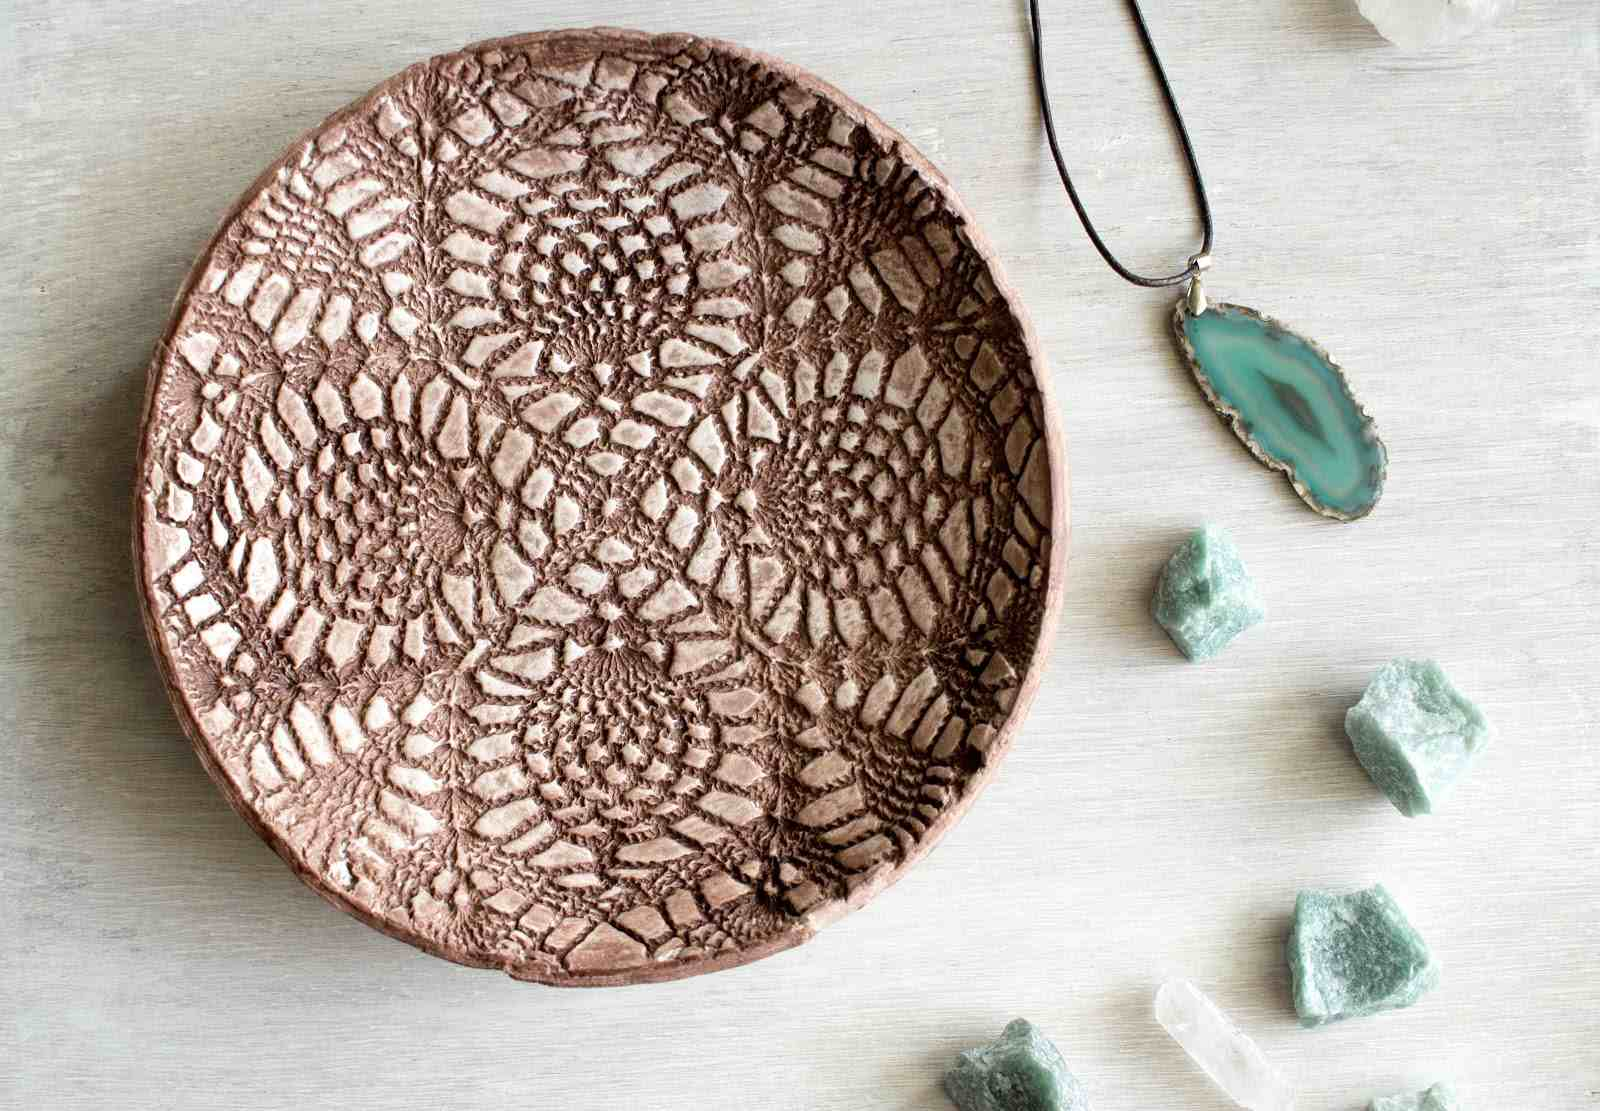 doily textured clay plate